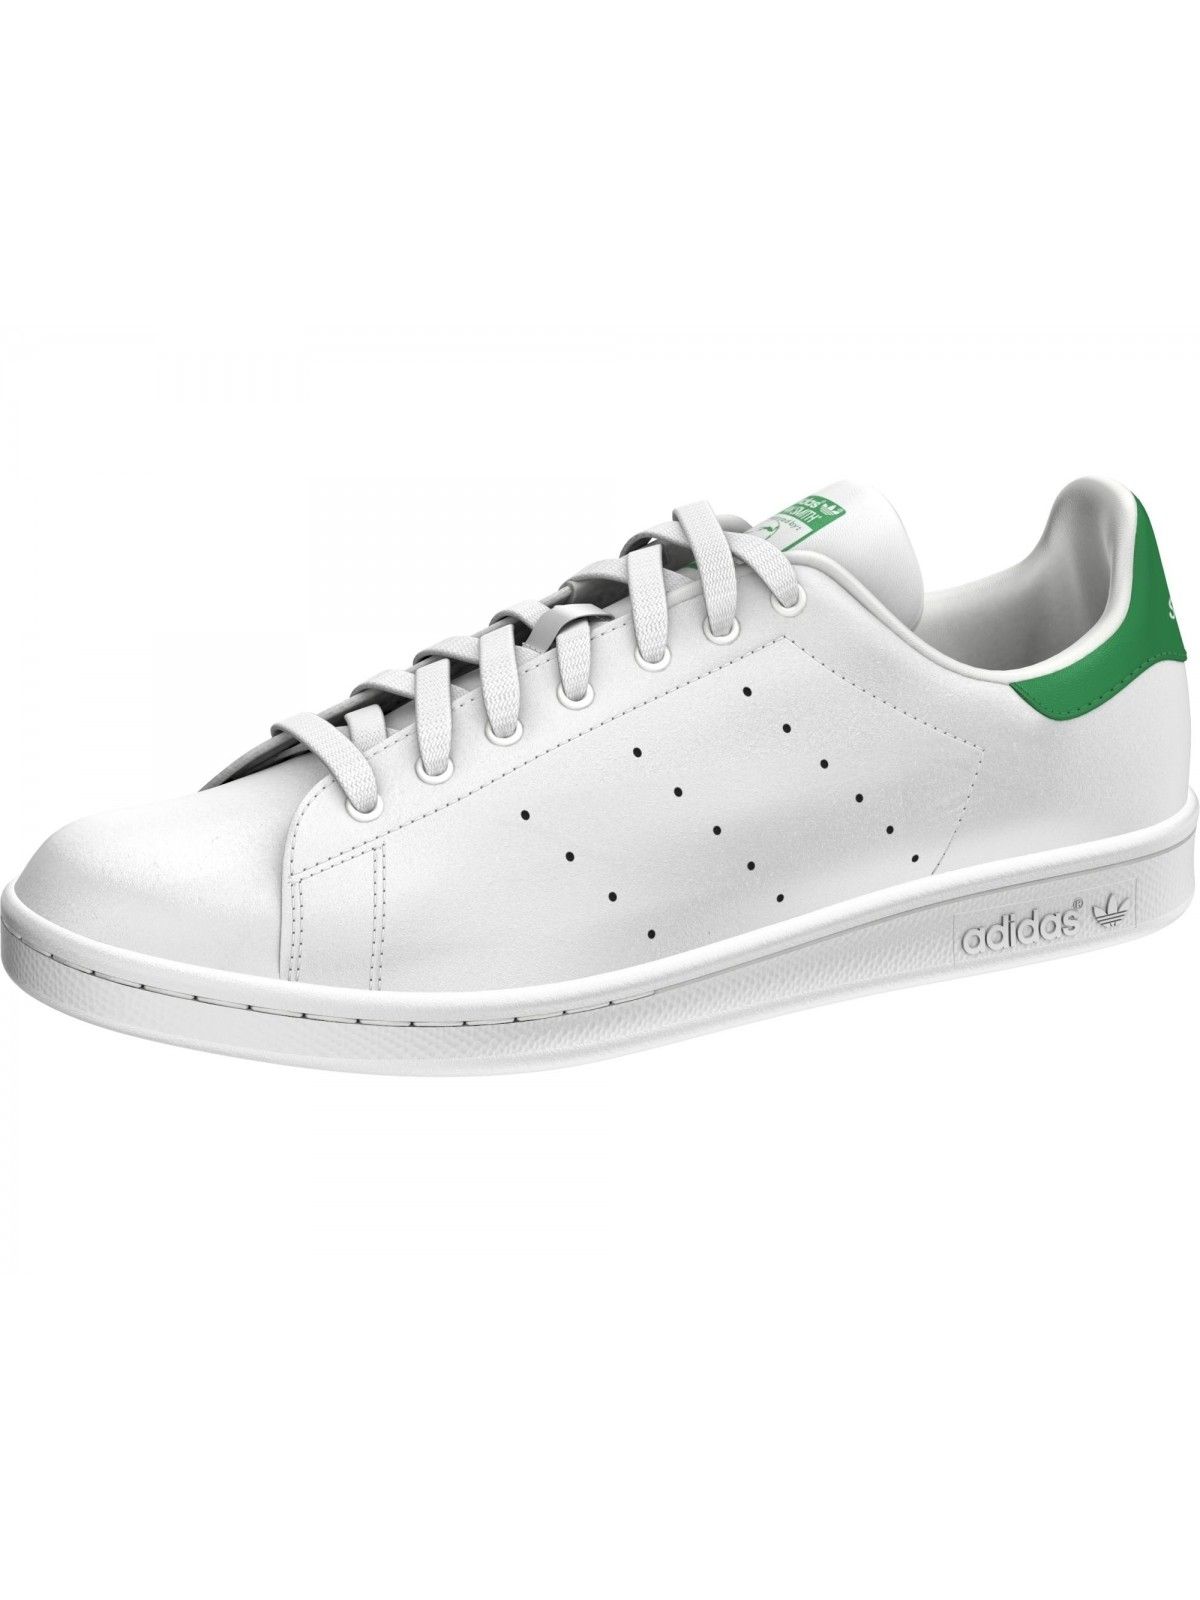 plus récent 00c2f e078a ADIDAS Stan Smith simili cuir blanc / vert - Stan smith ...